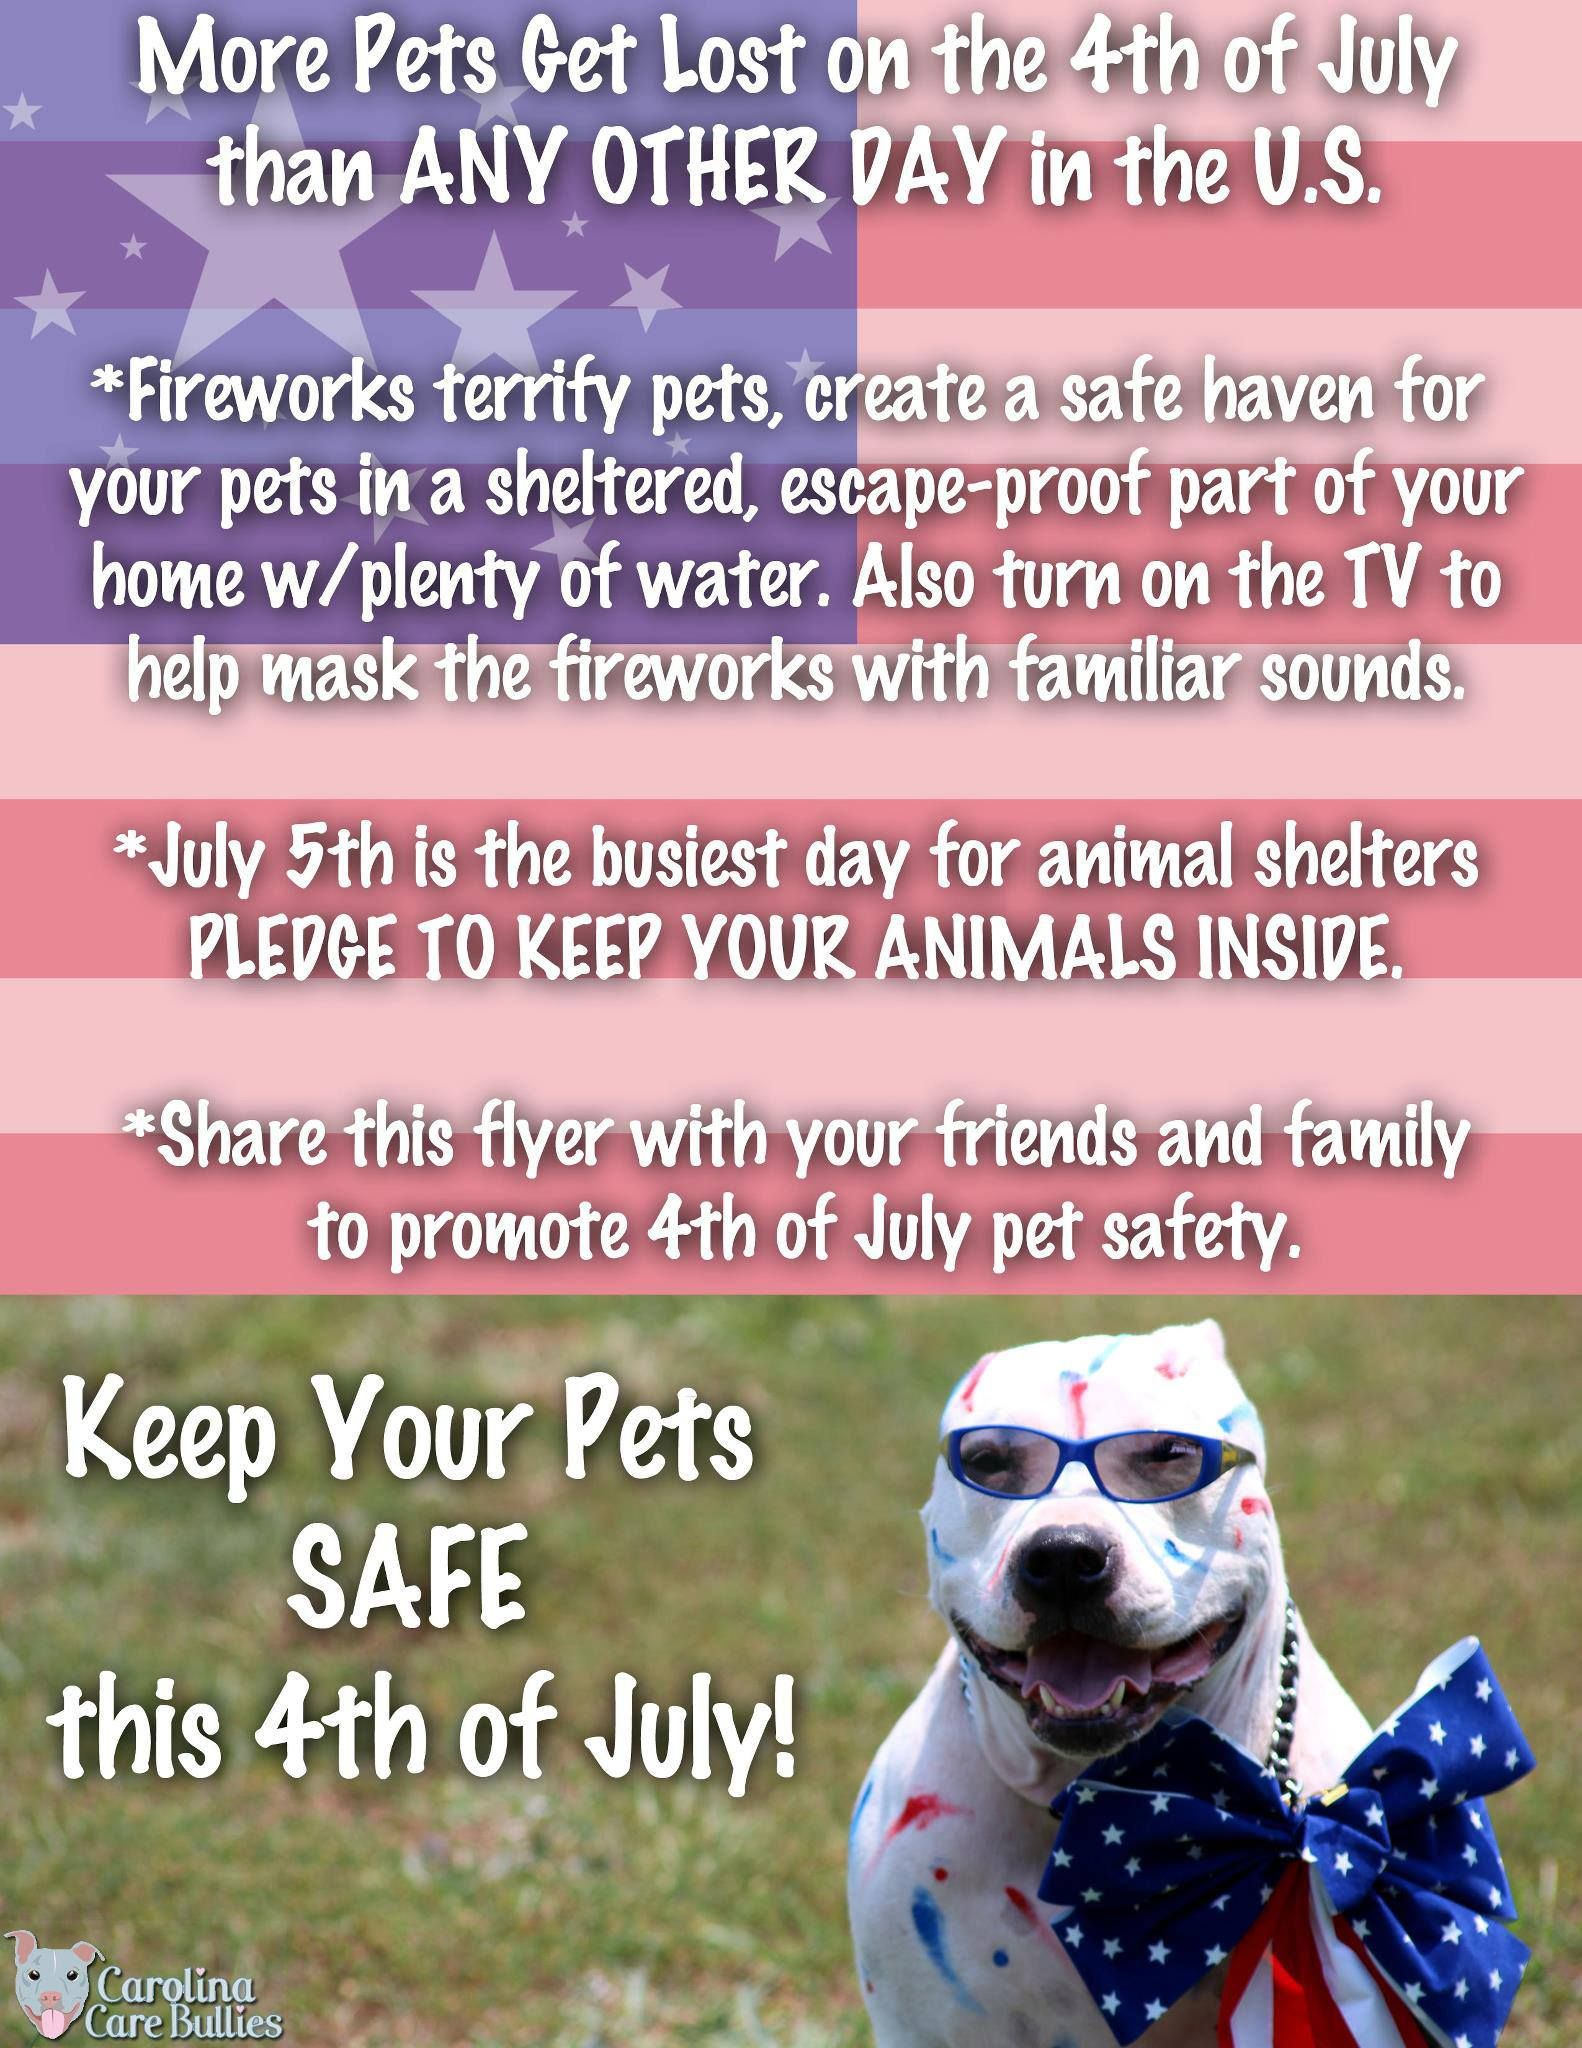 Keep Your Pets Safe On The 4th Losing A Pet Find Pets Pet Safe